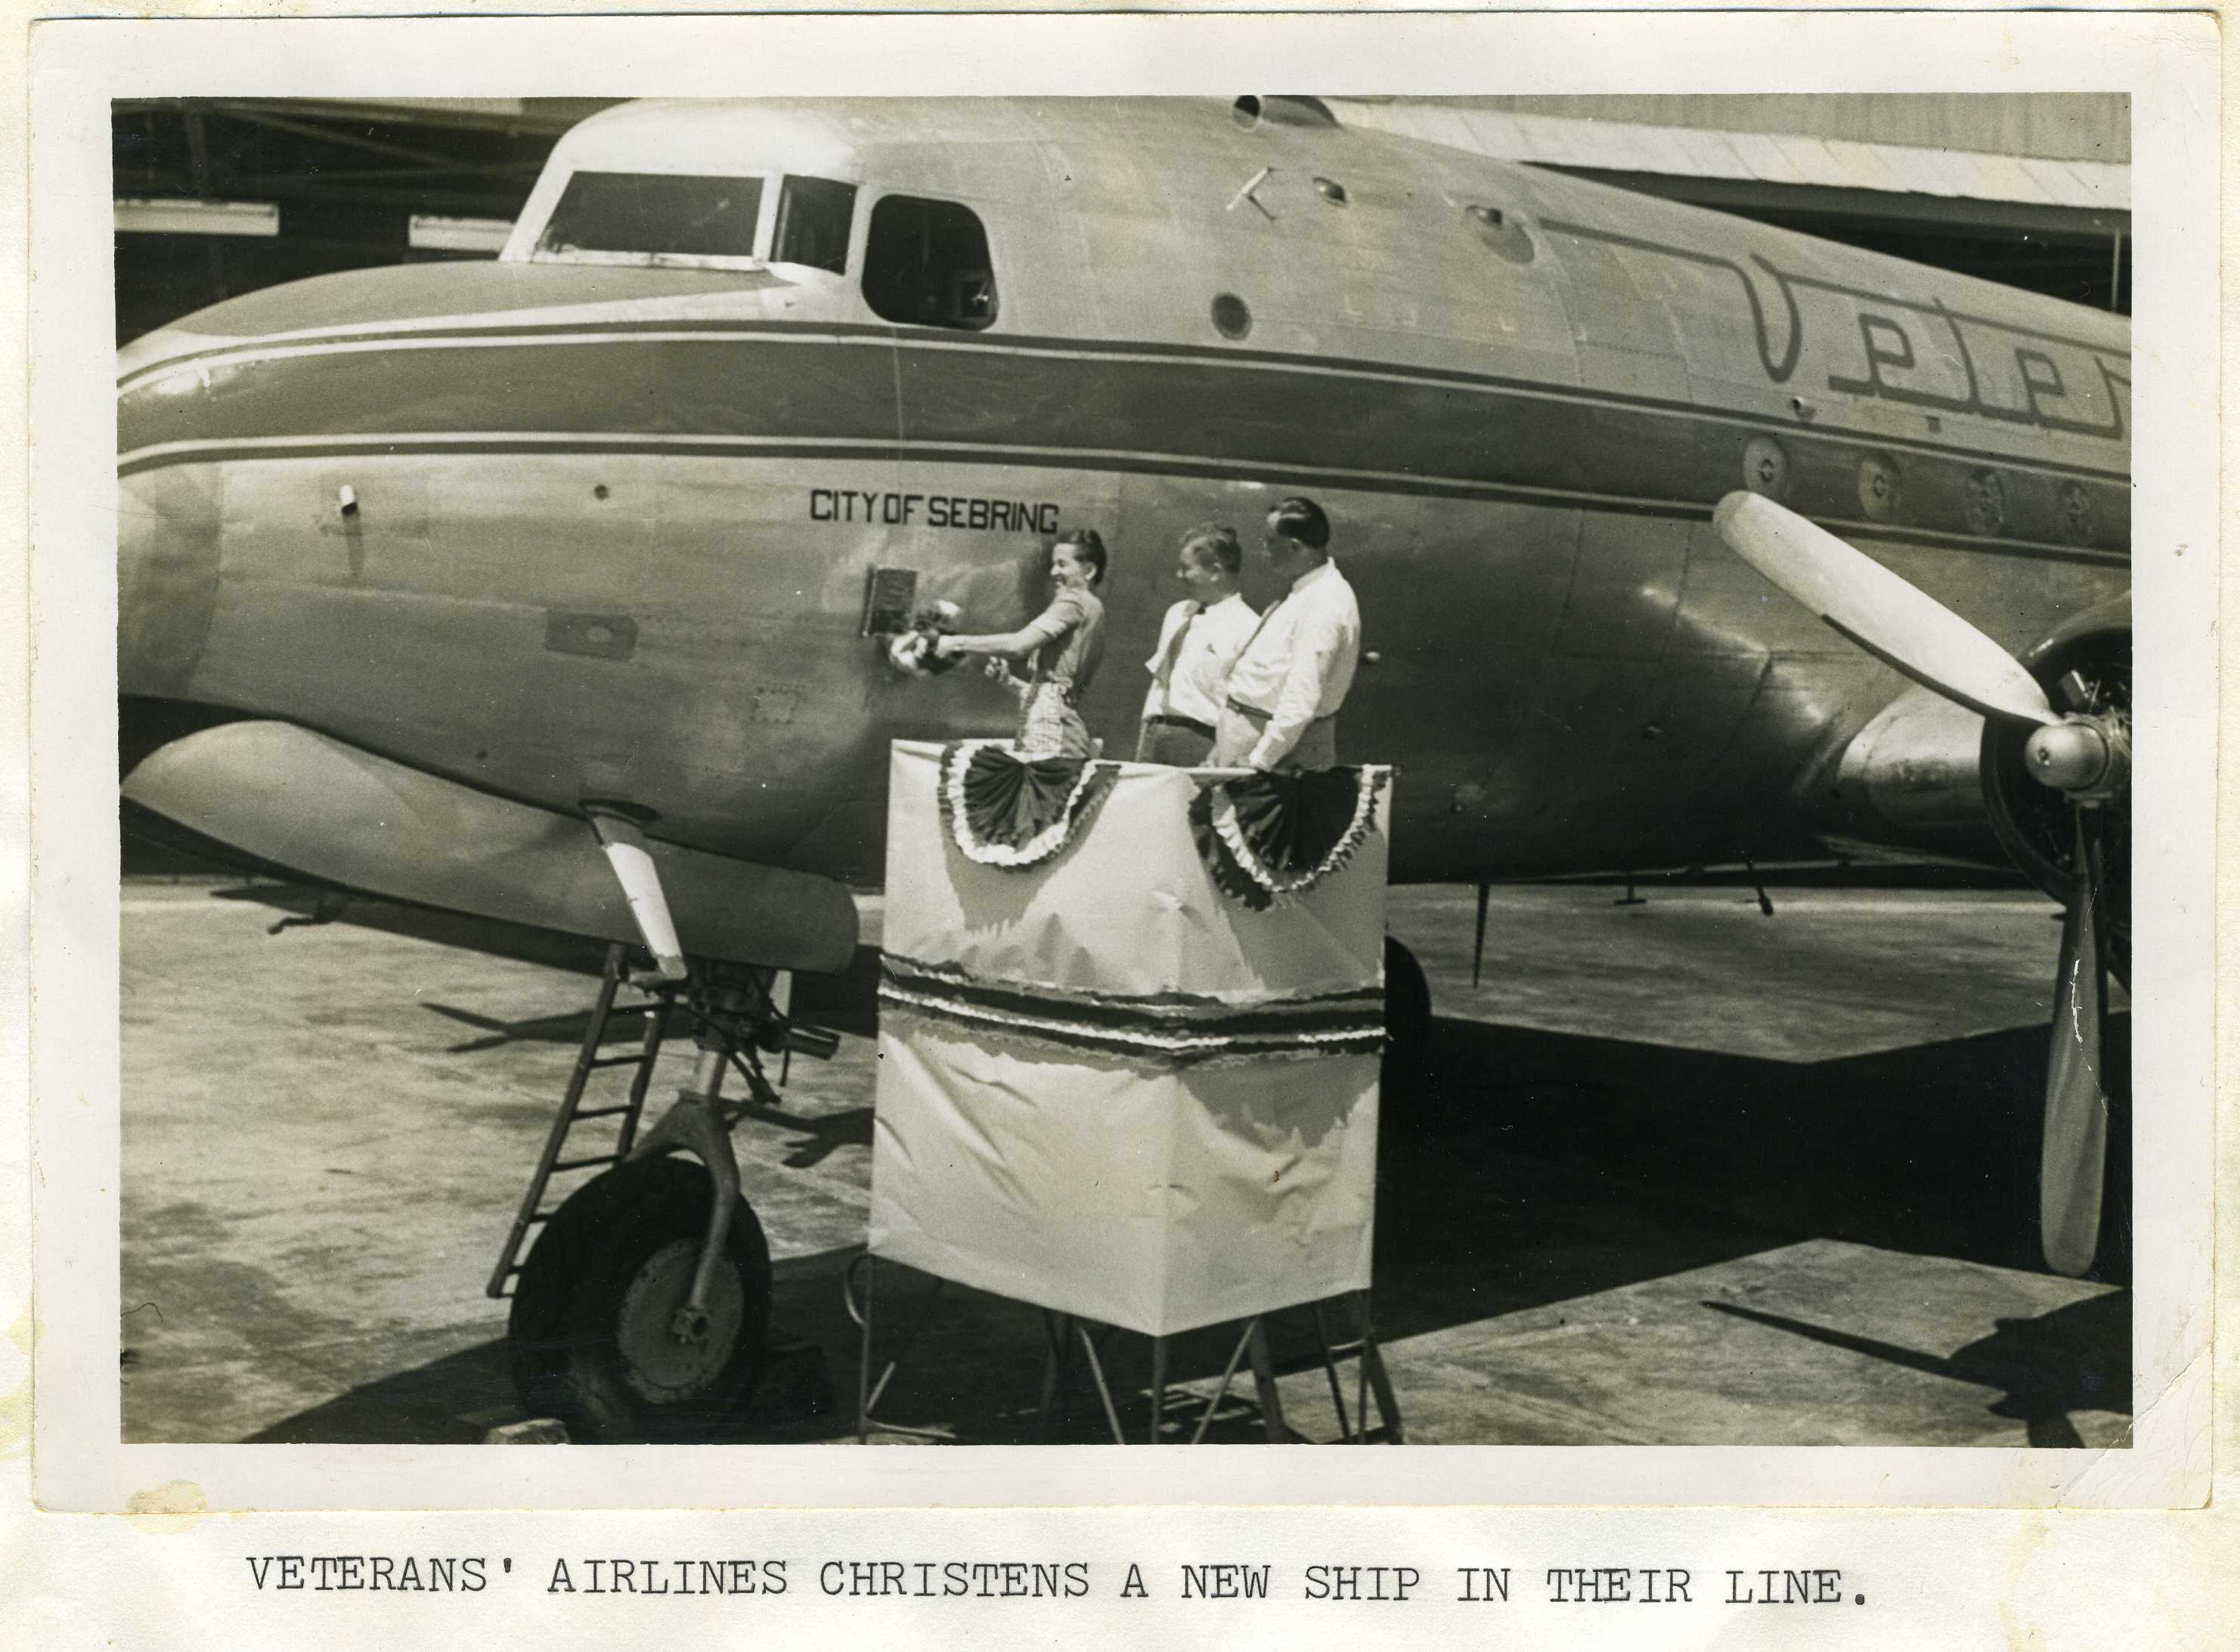 VAE's second DC-4 christened